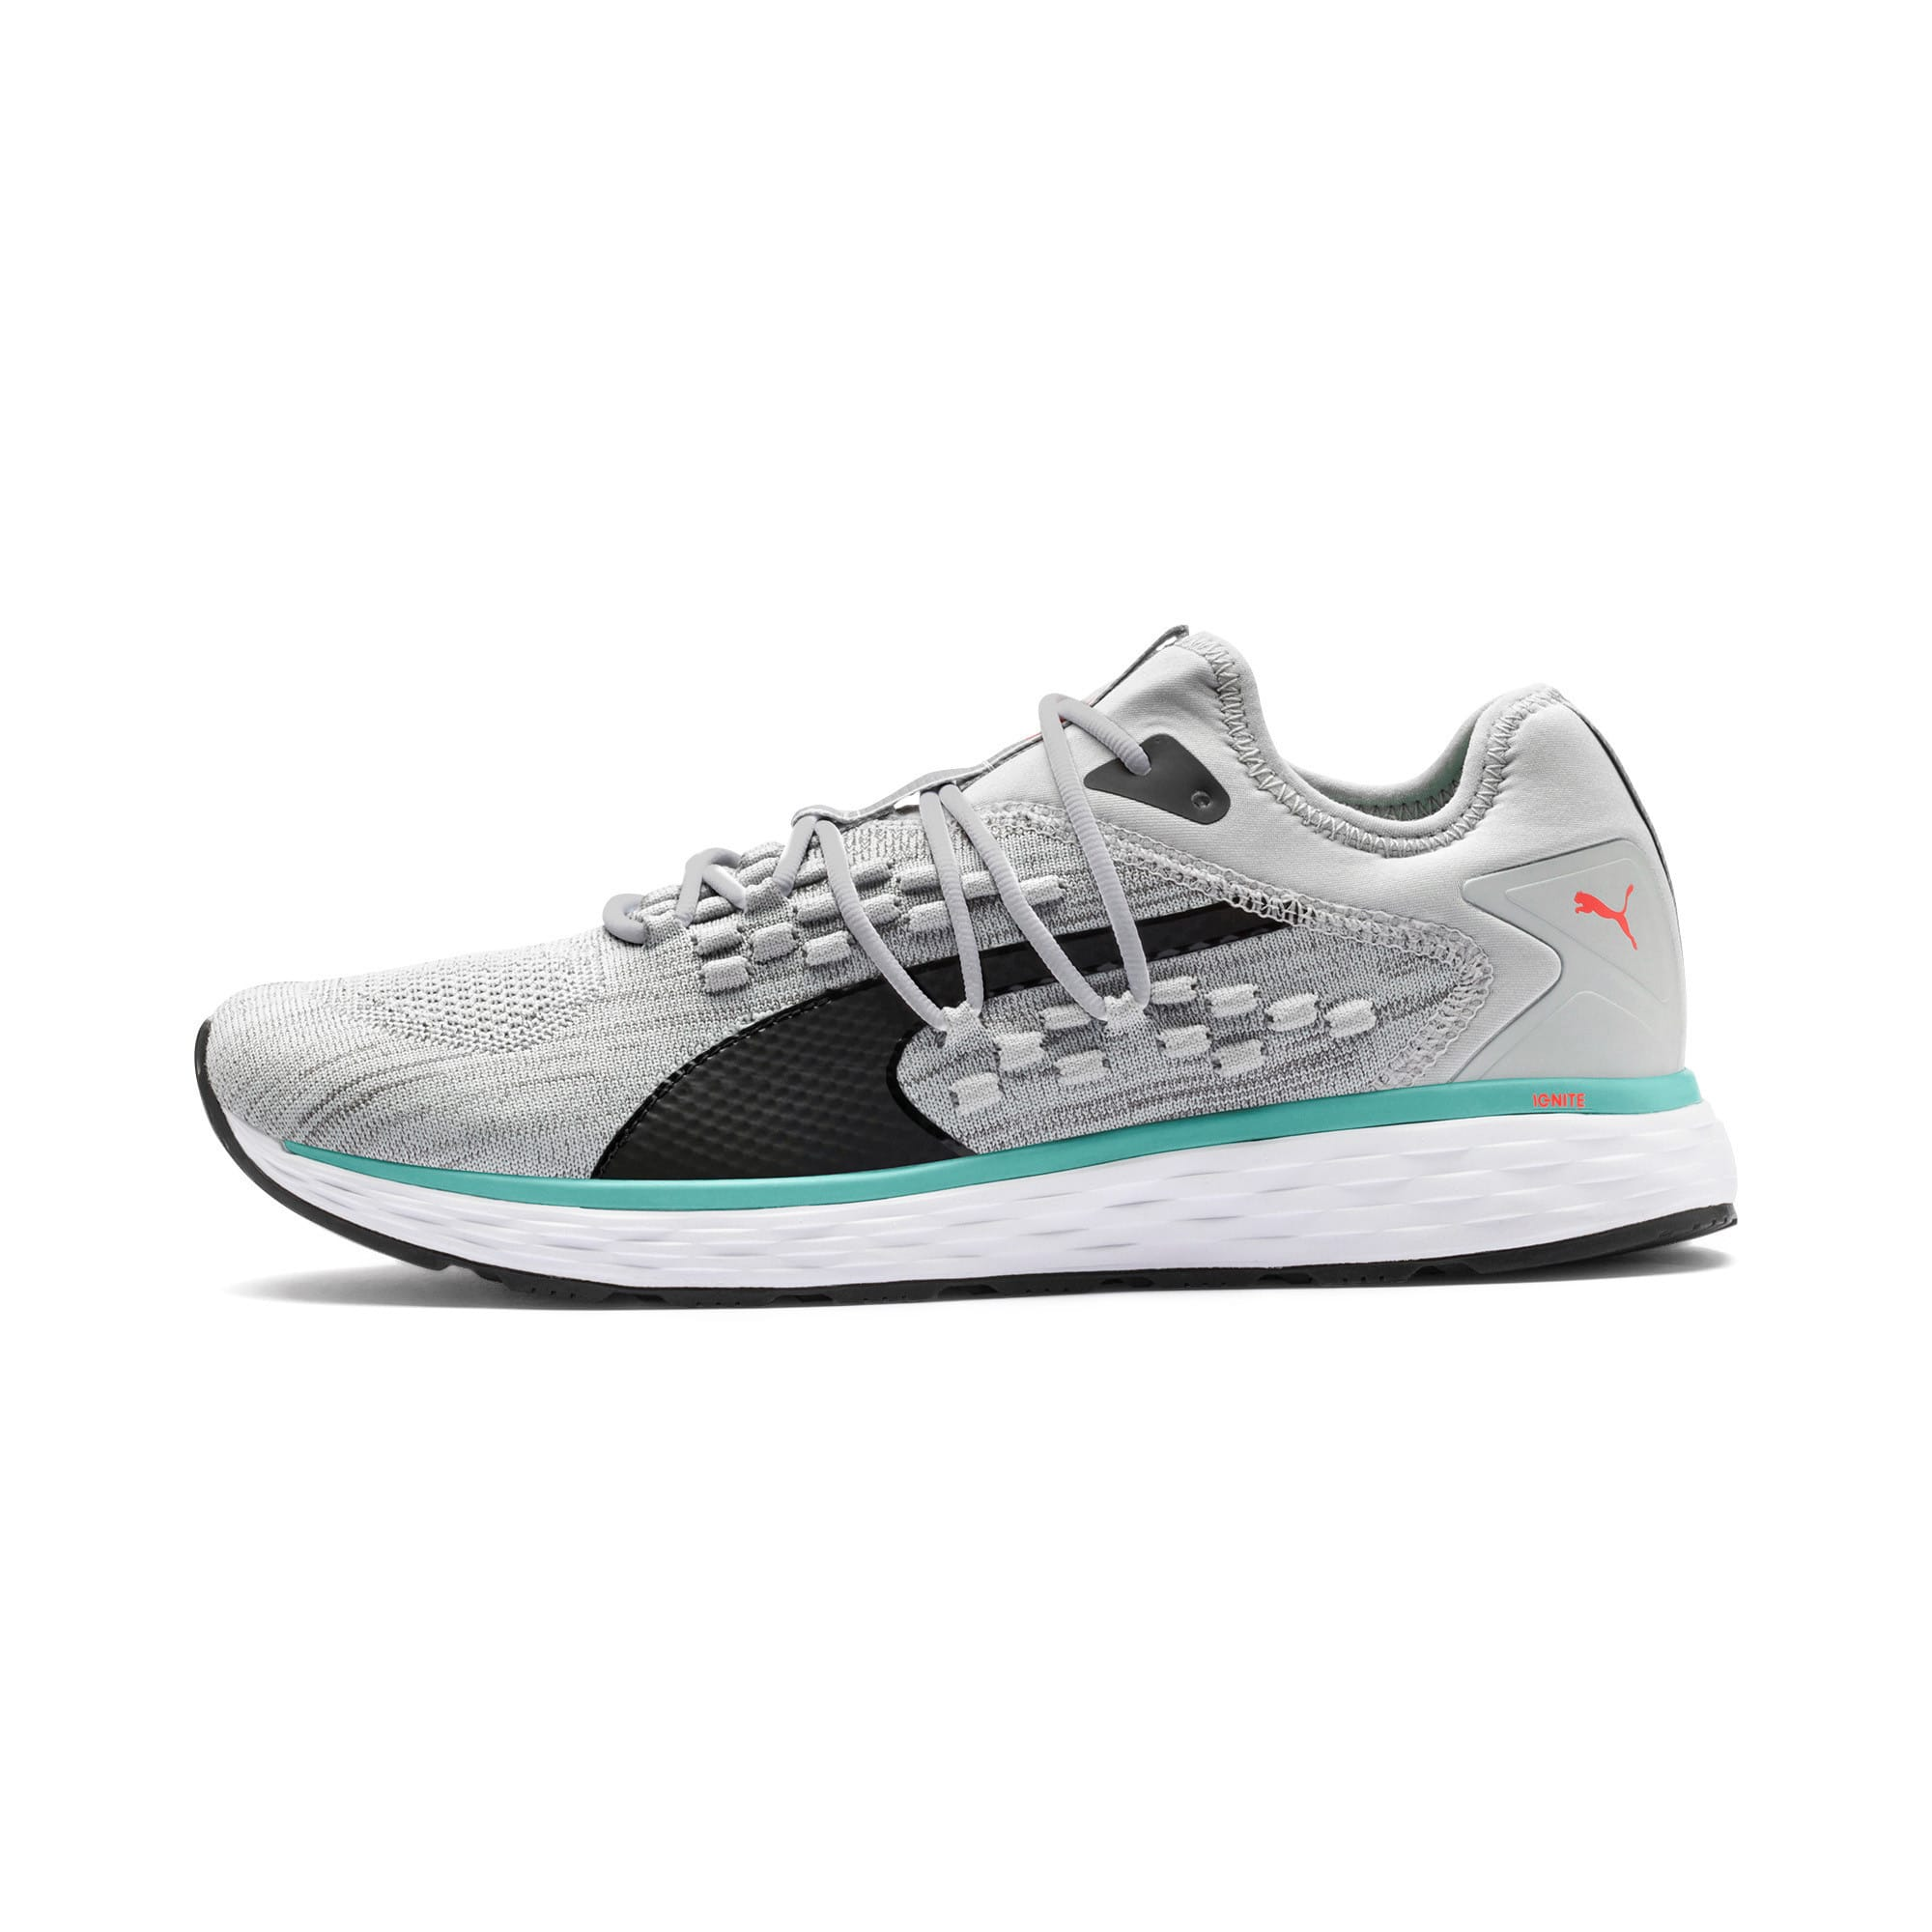 Thumbnail 1 of SPEED FUSEFIT Men's Running Shoes, High Rise-Blue Turquoise, medium-IND